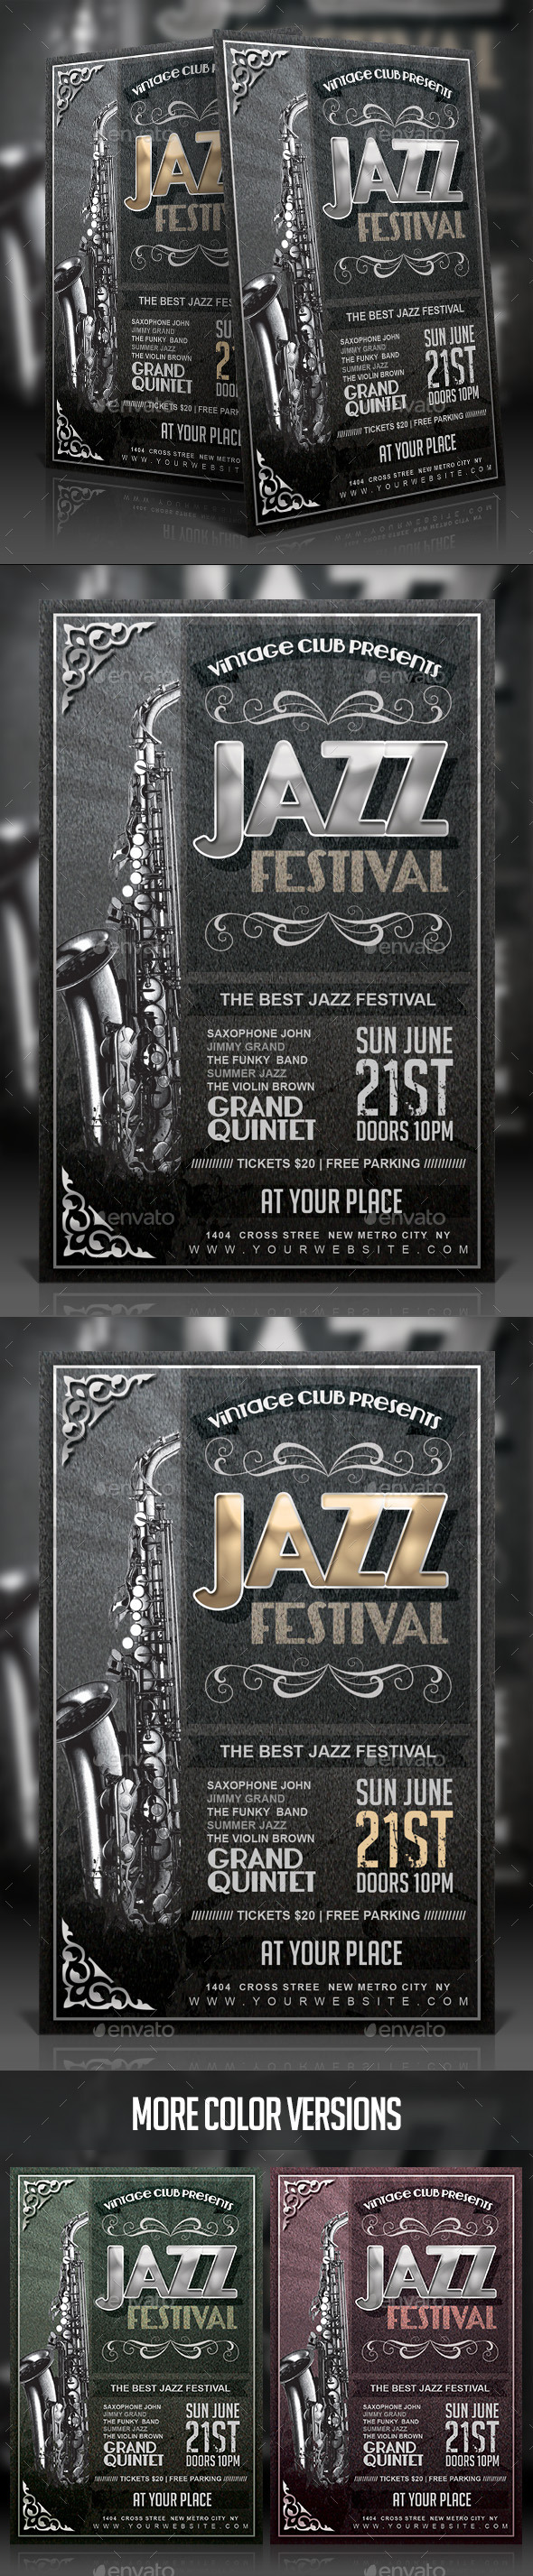 Vintage Jazz Festival Flyer - Events Flyers